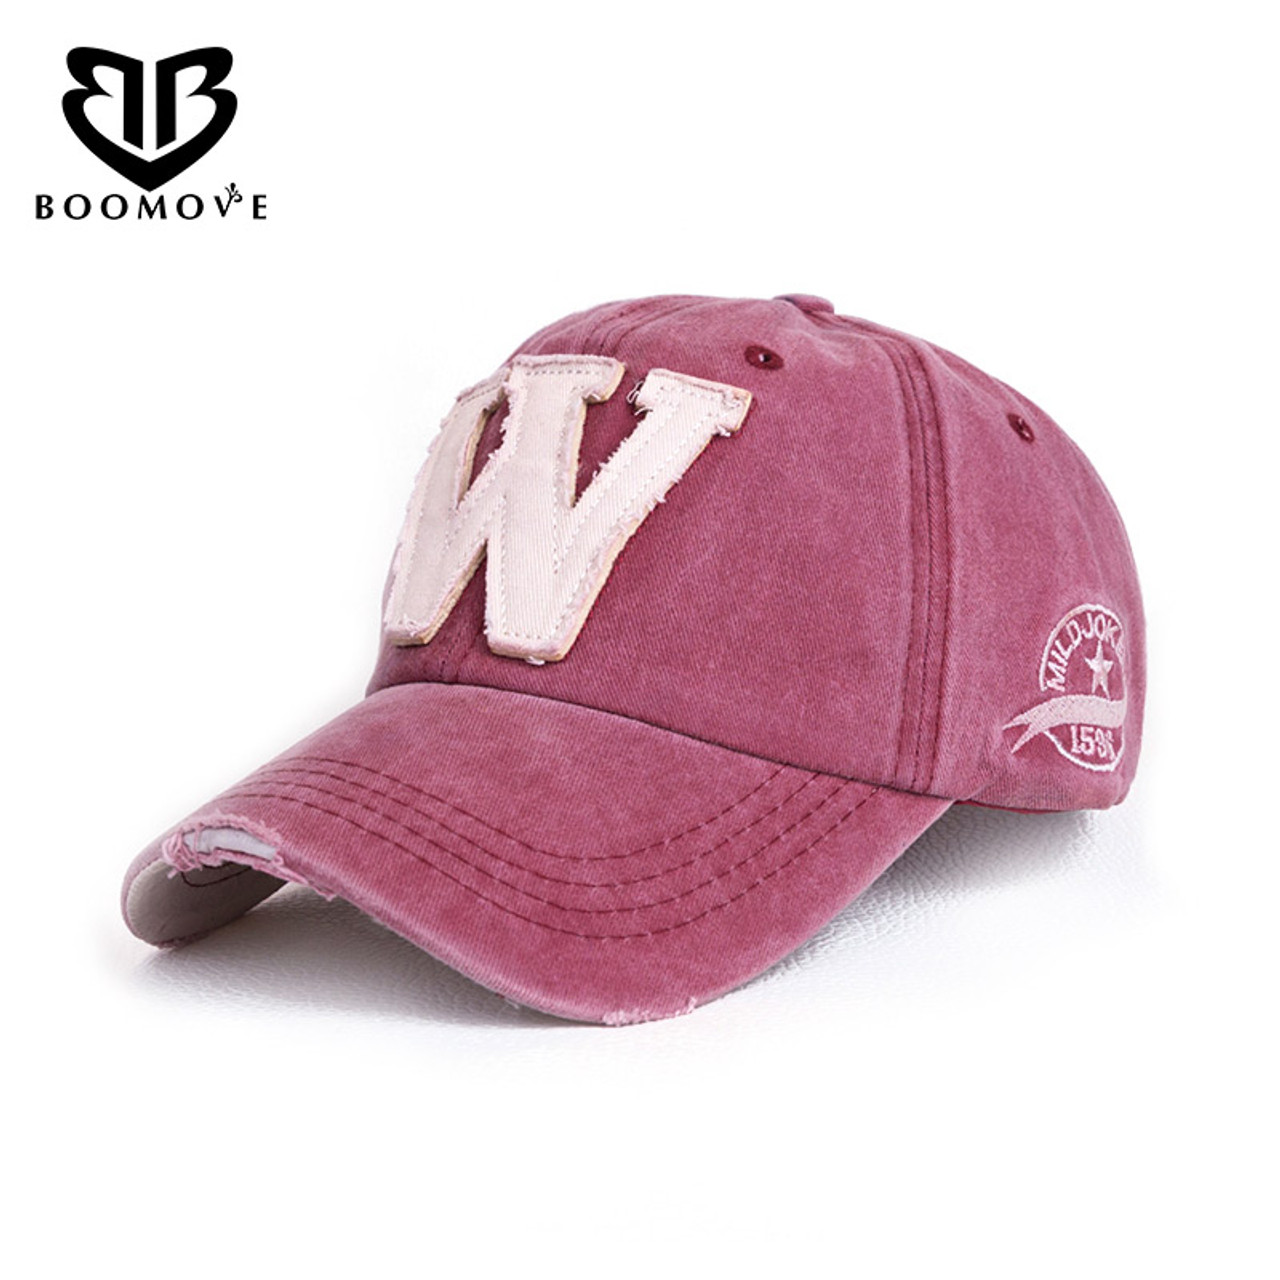 4c608d9d931 BOOMOVE Brand Casual Baseball Caps For Women Men High Quality Gorras  Fashion Letter Women Caps Embroidery ...